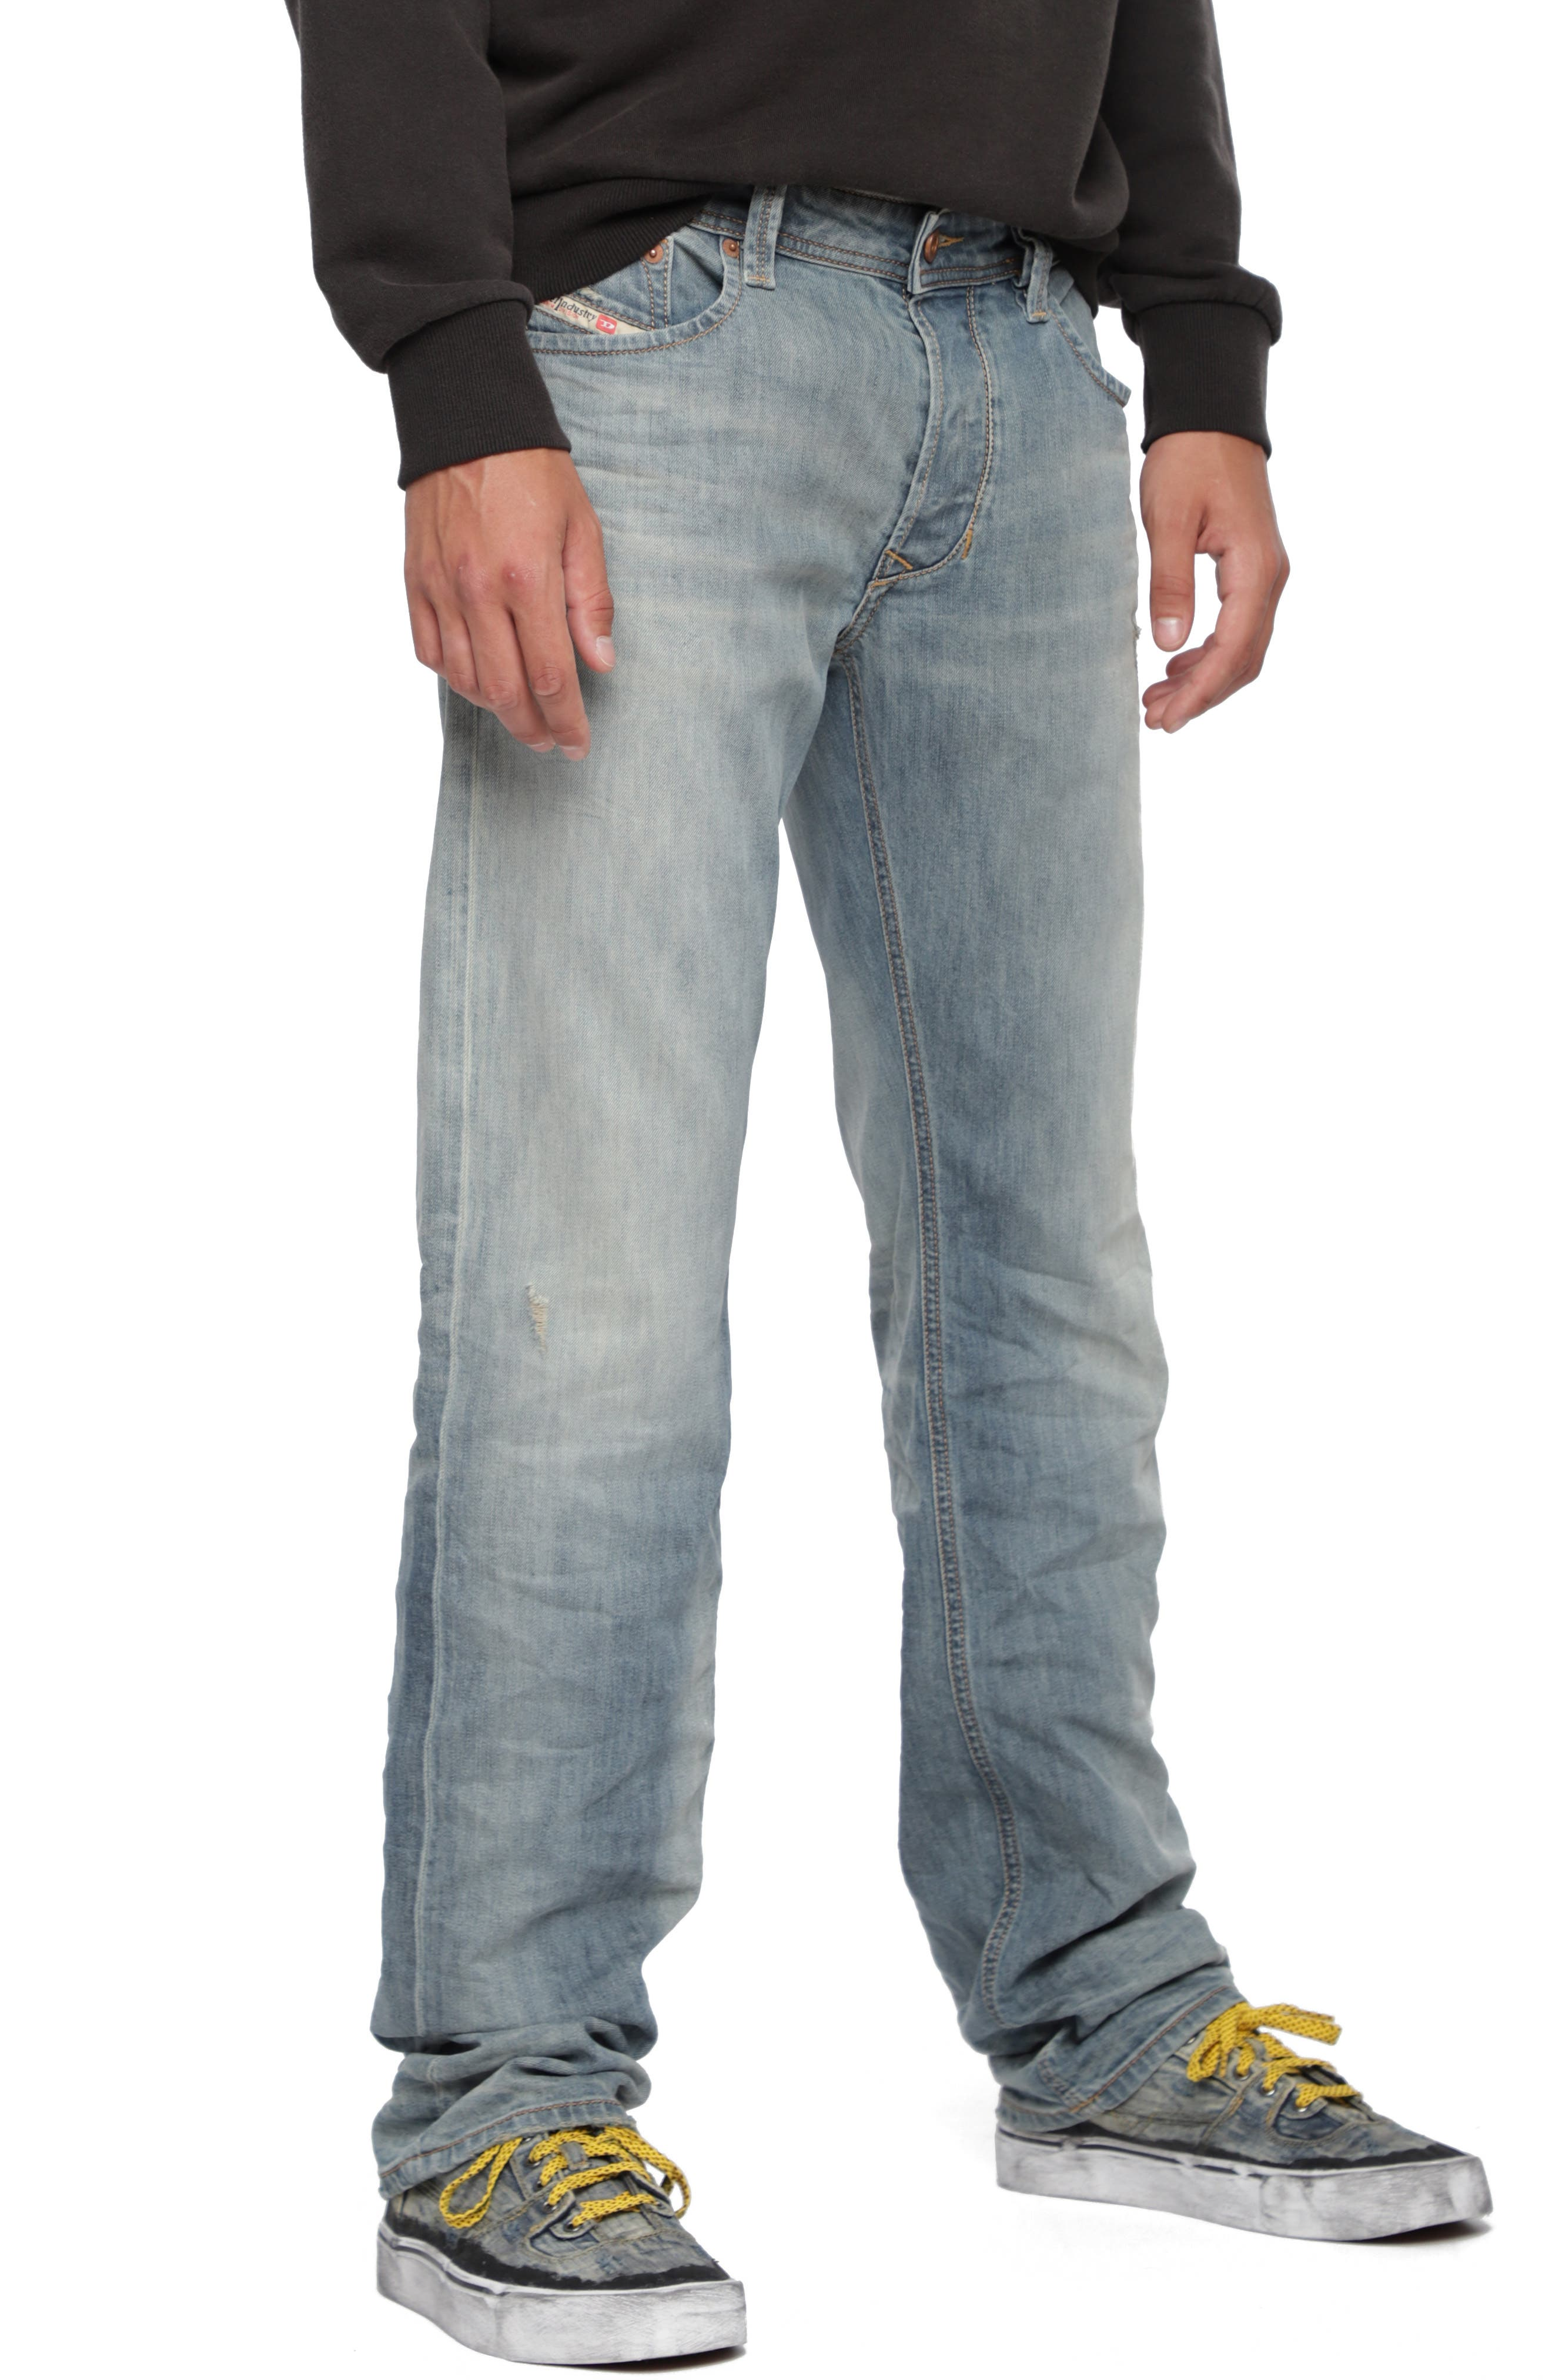 Larkee Relaxed Fit Jeans,                         Main,                         color, 084UK